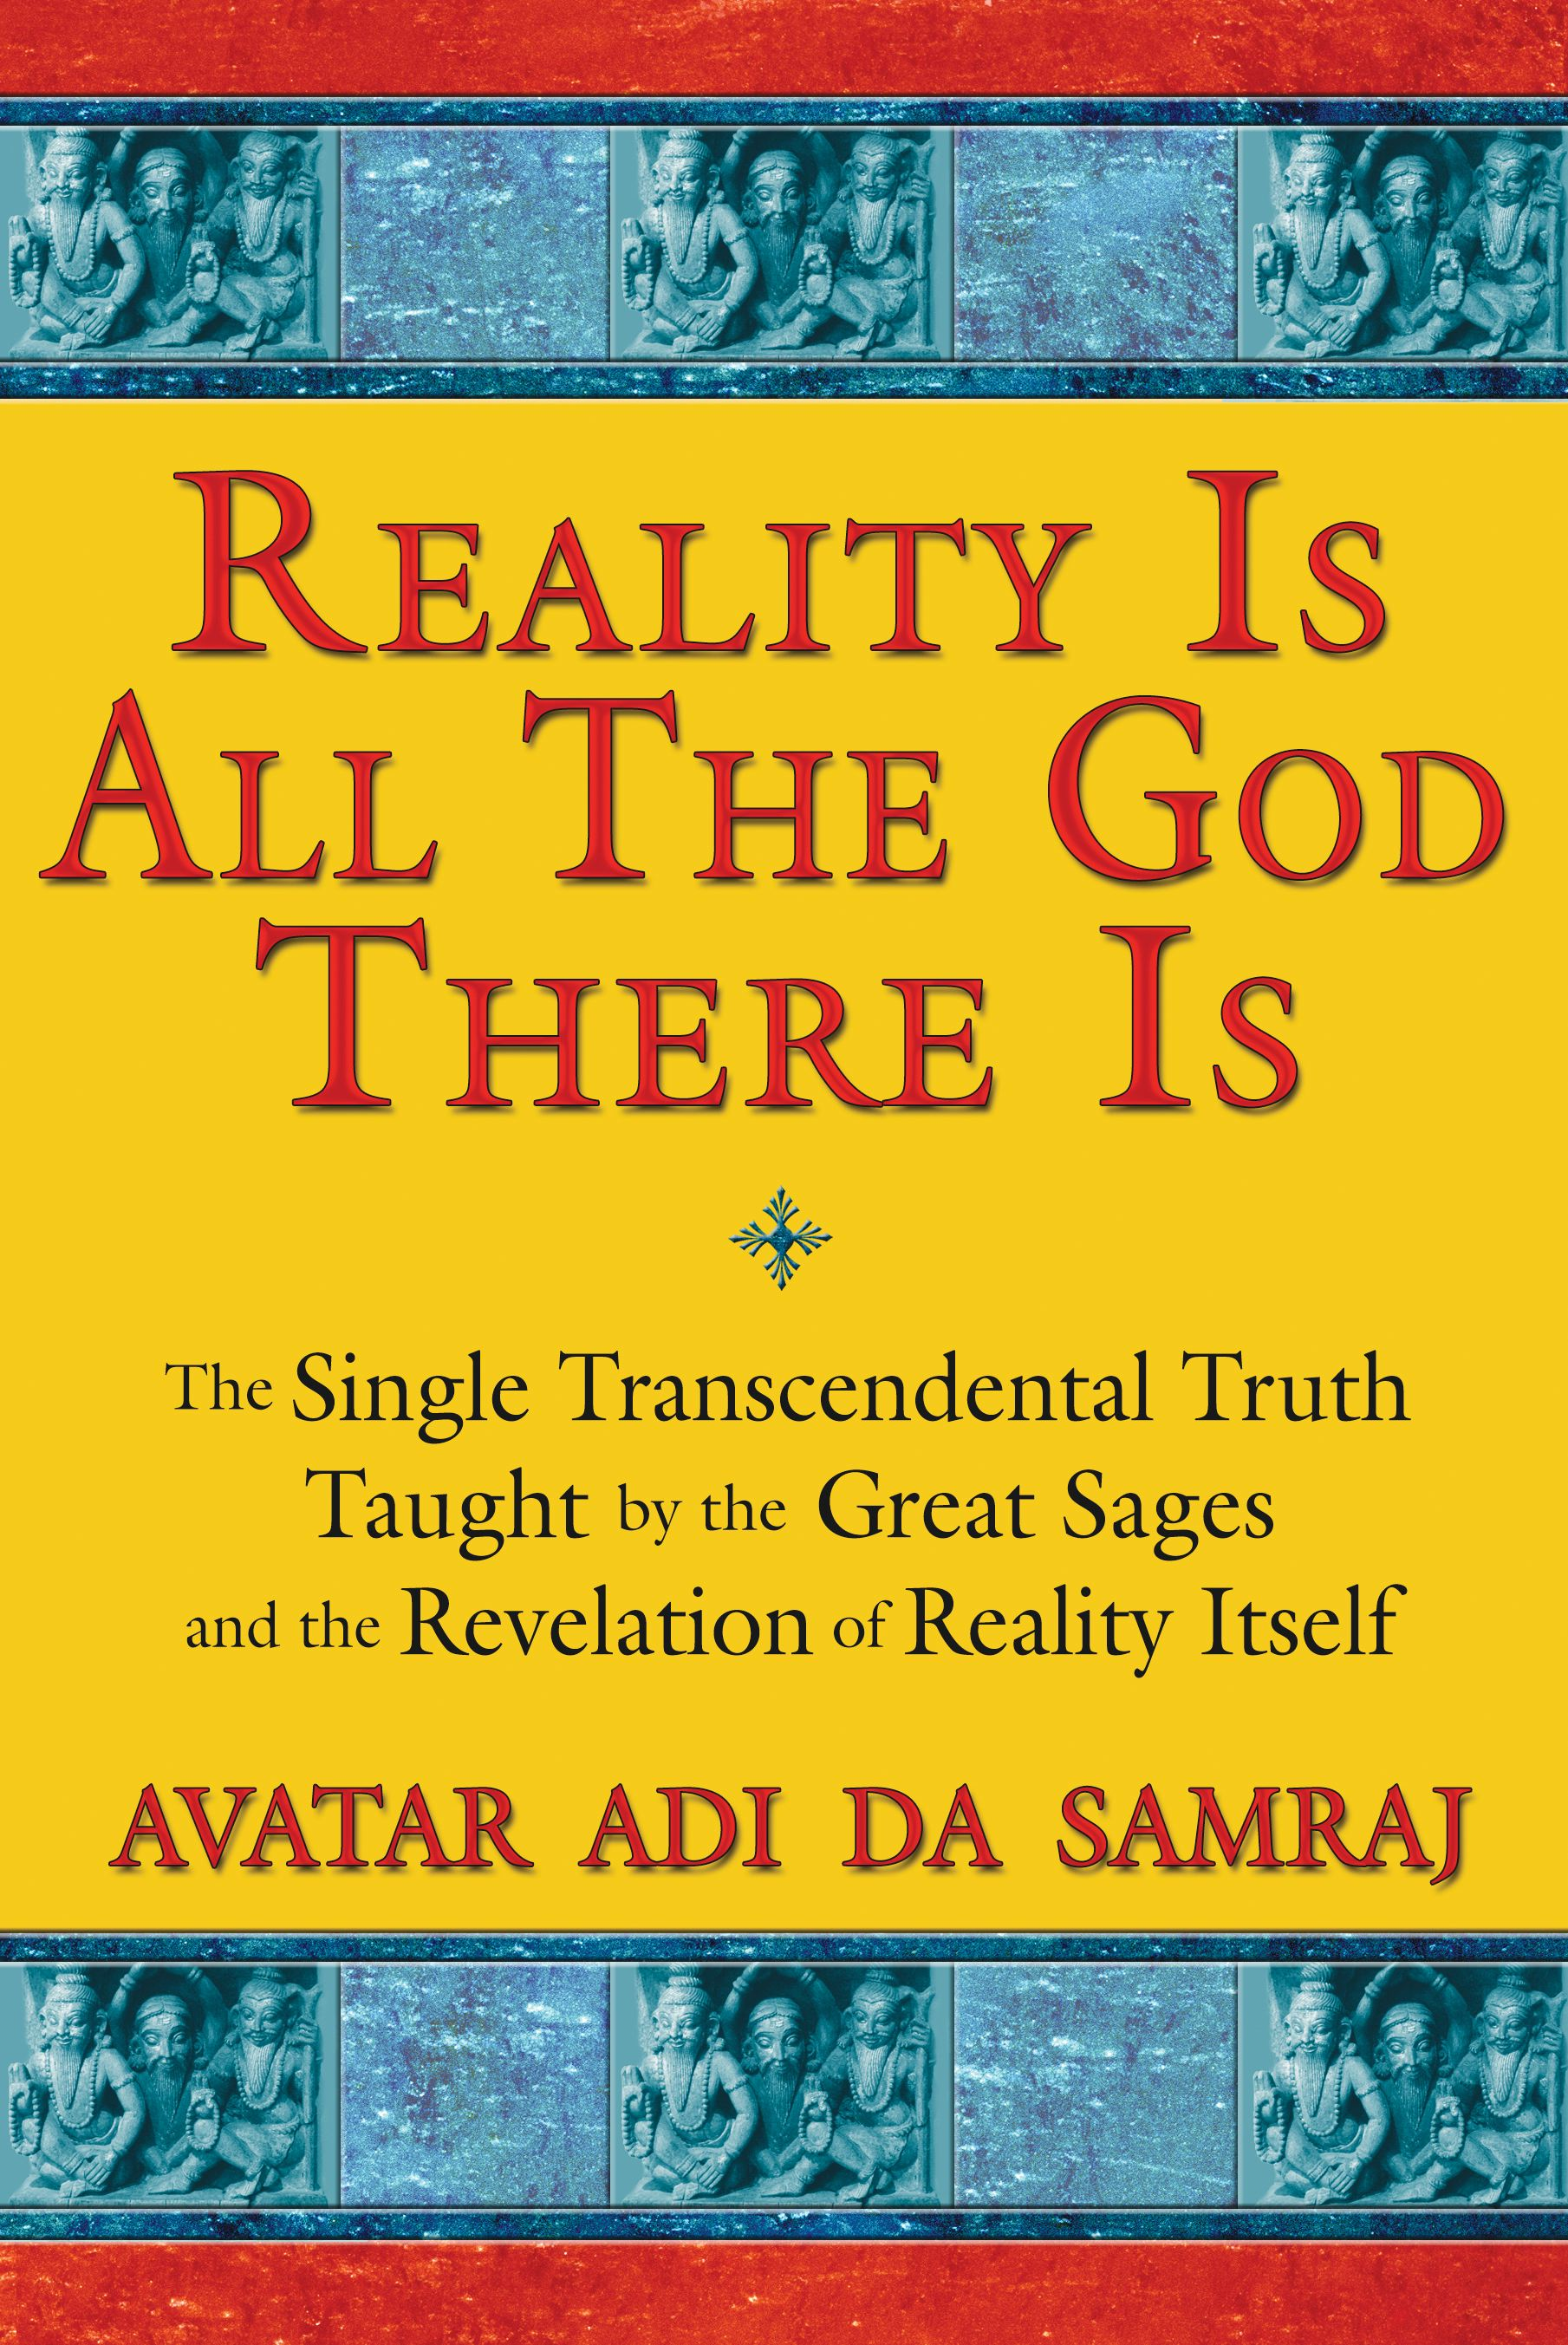 Reality-is-all-the-god-there-is-9781594772573_hr